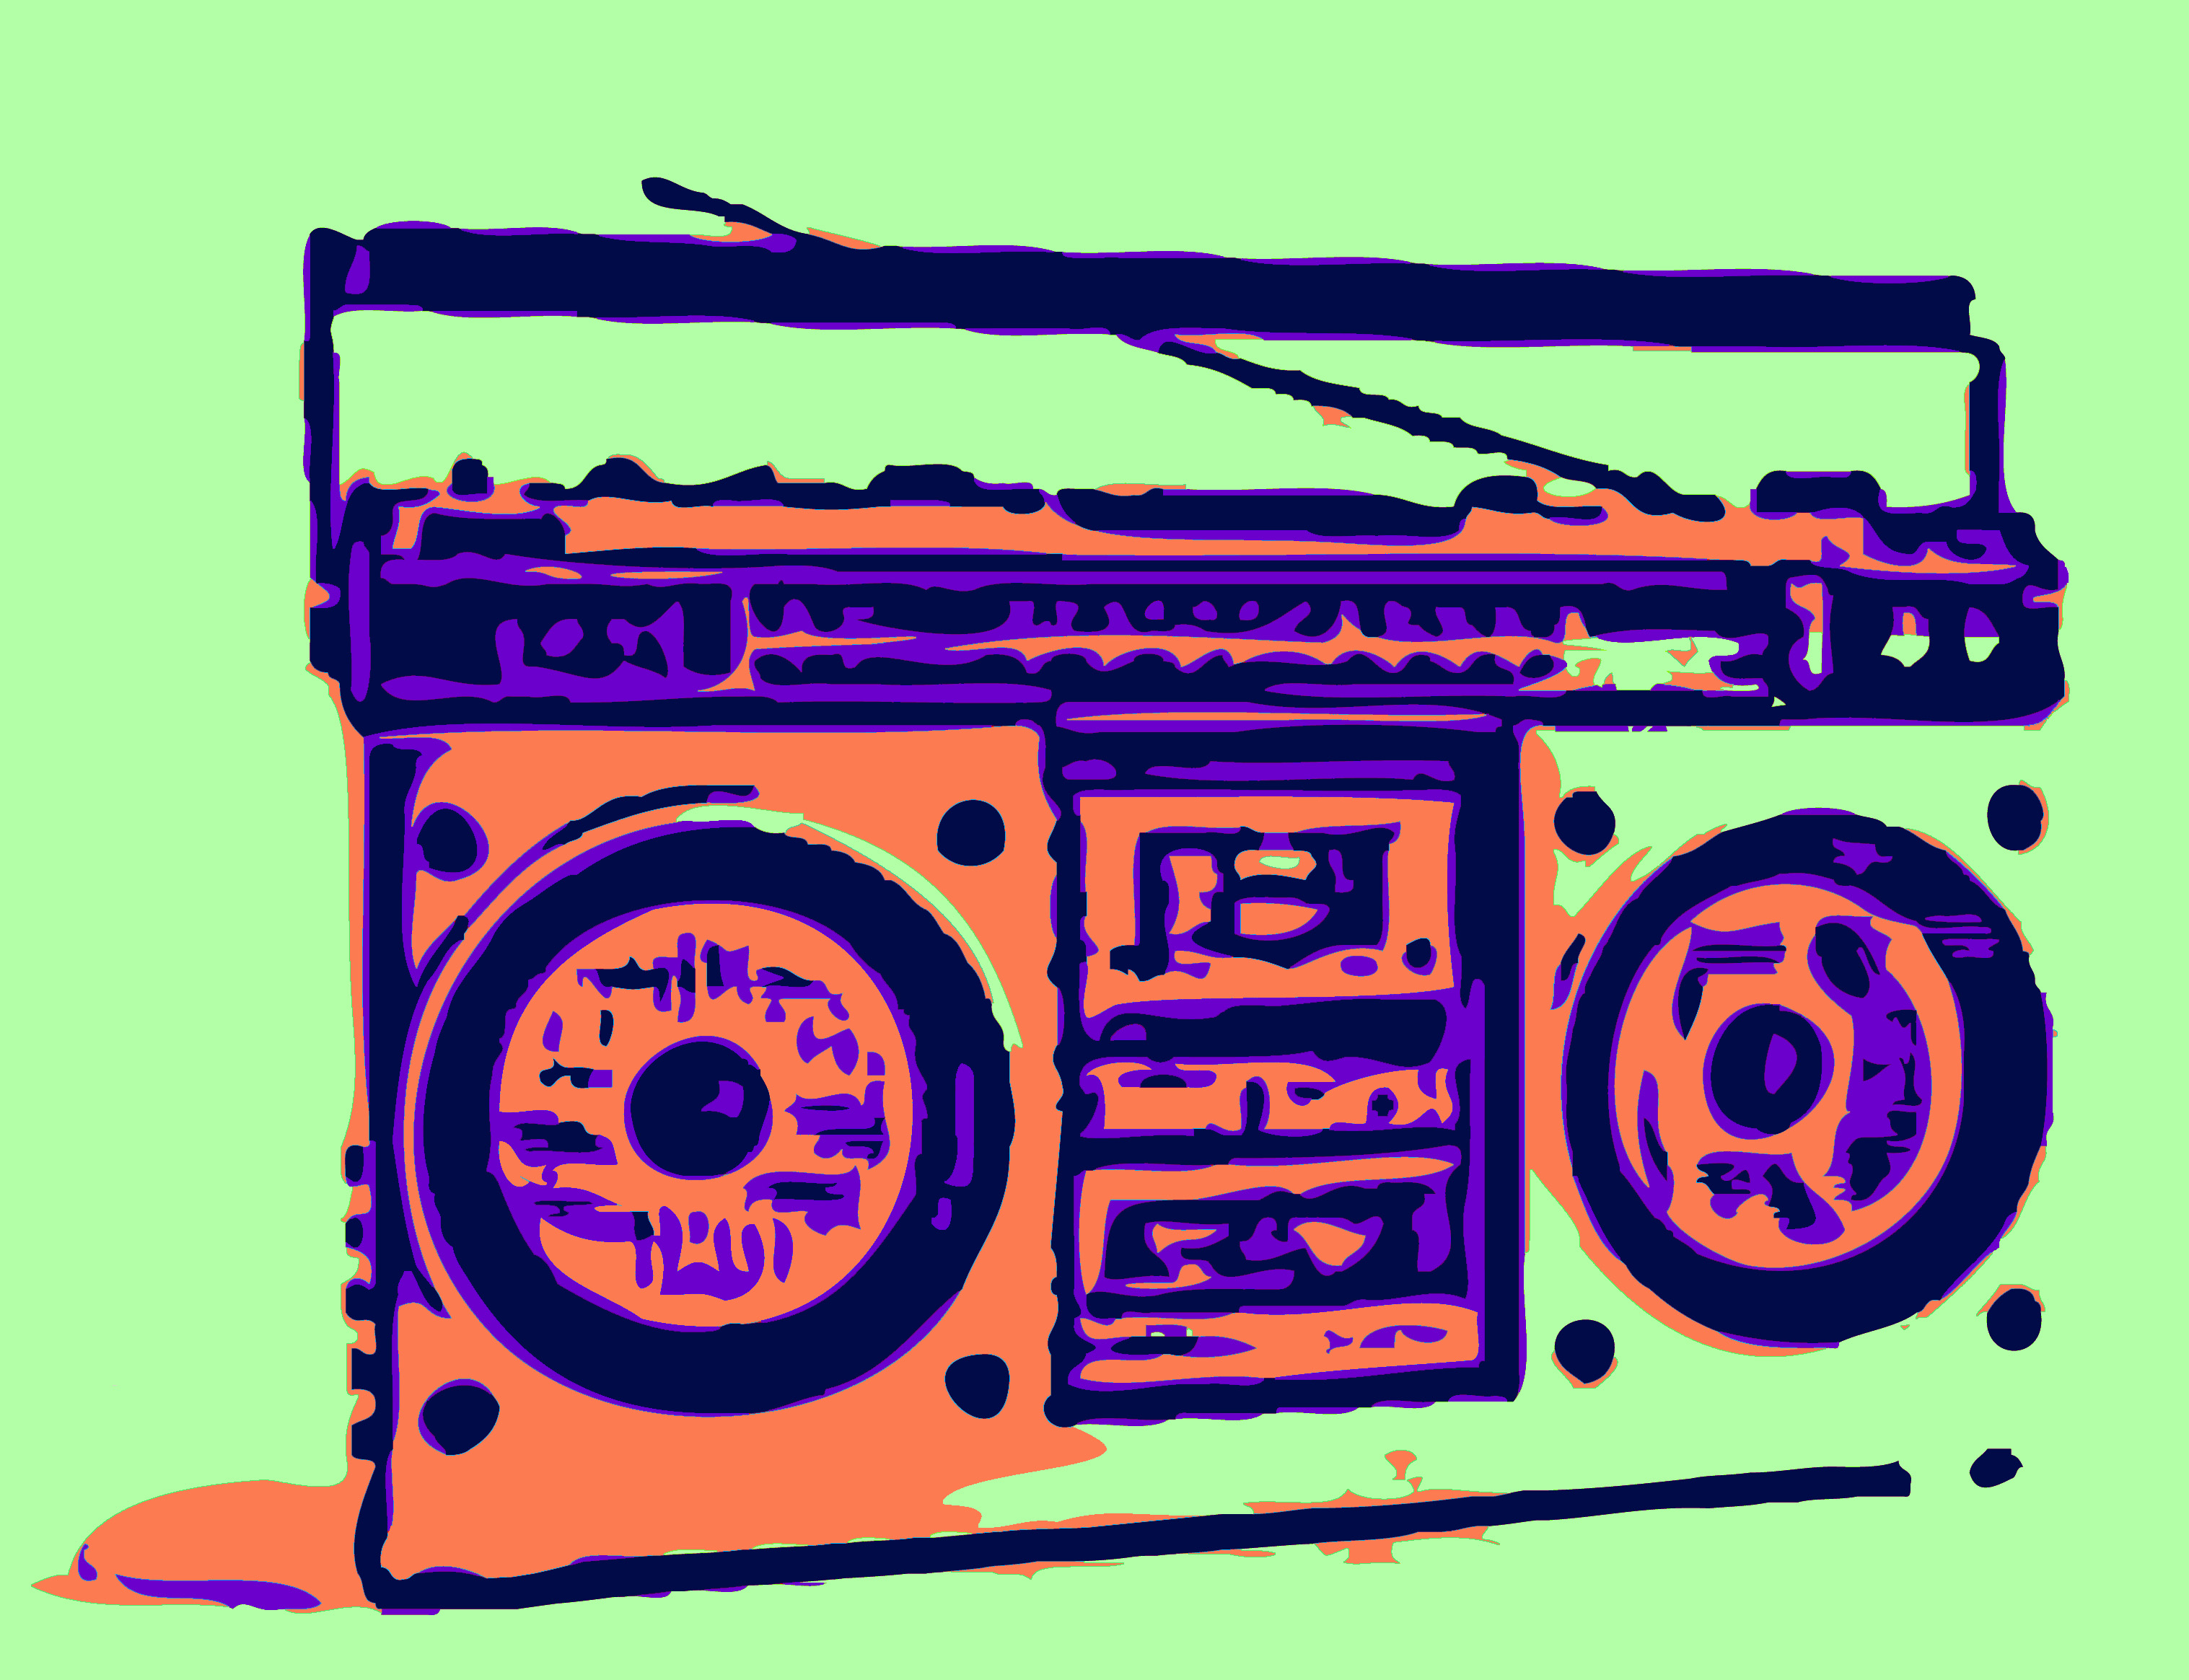 70s boom box clipart clip freeuse download 1980s Boombox 1970s Compact Cassette Cassette deck - audio cassette ... clip freeuse download